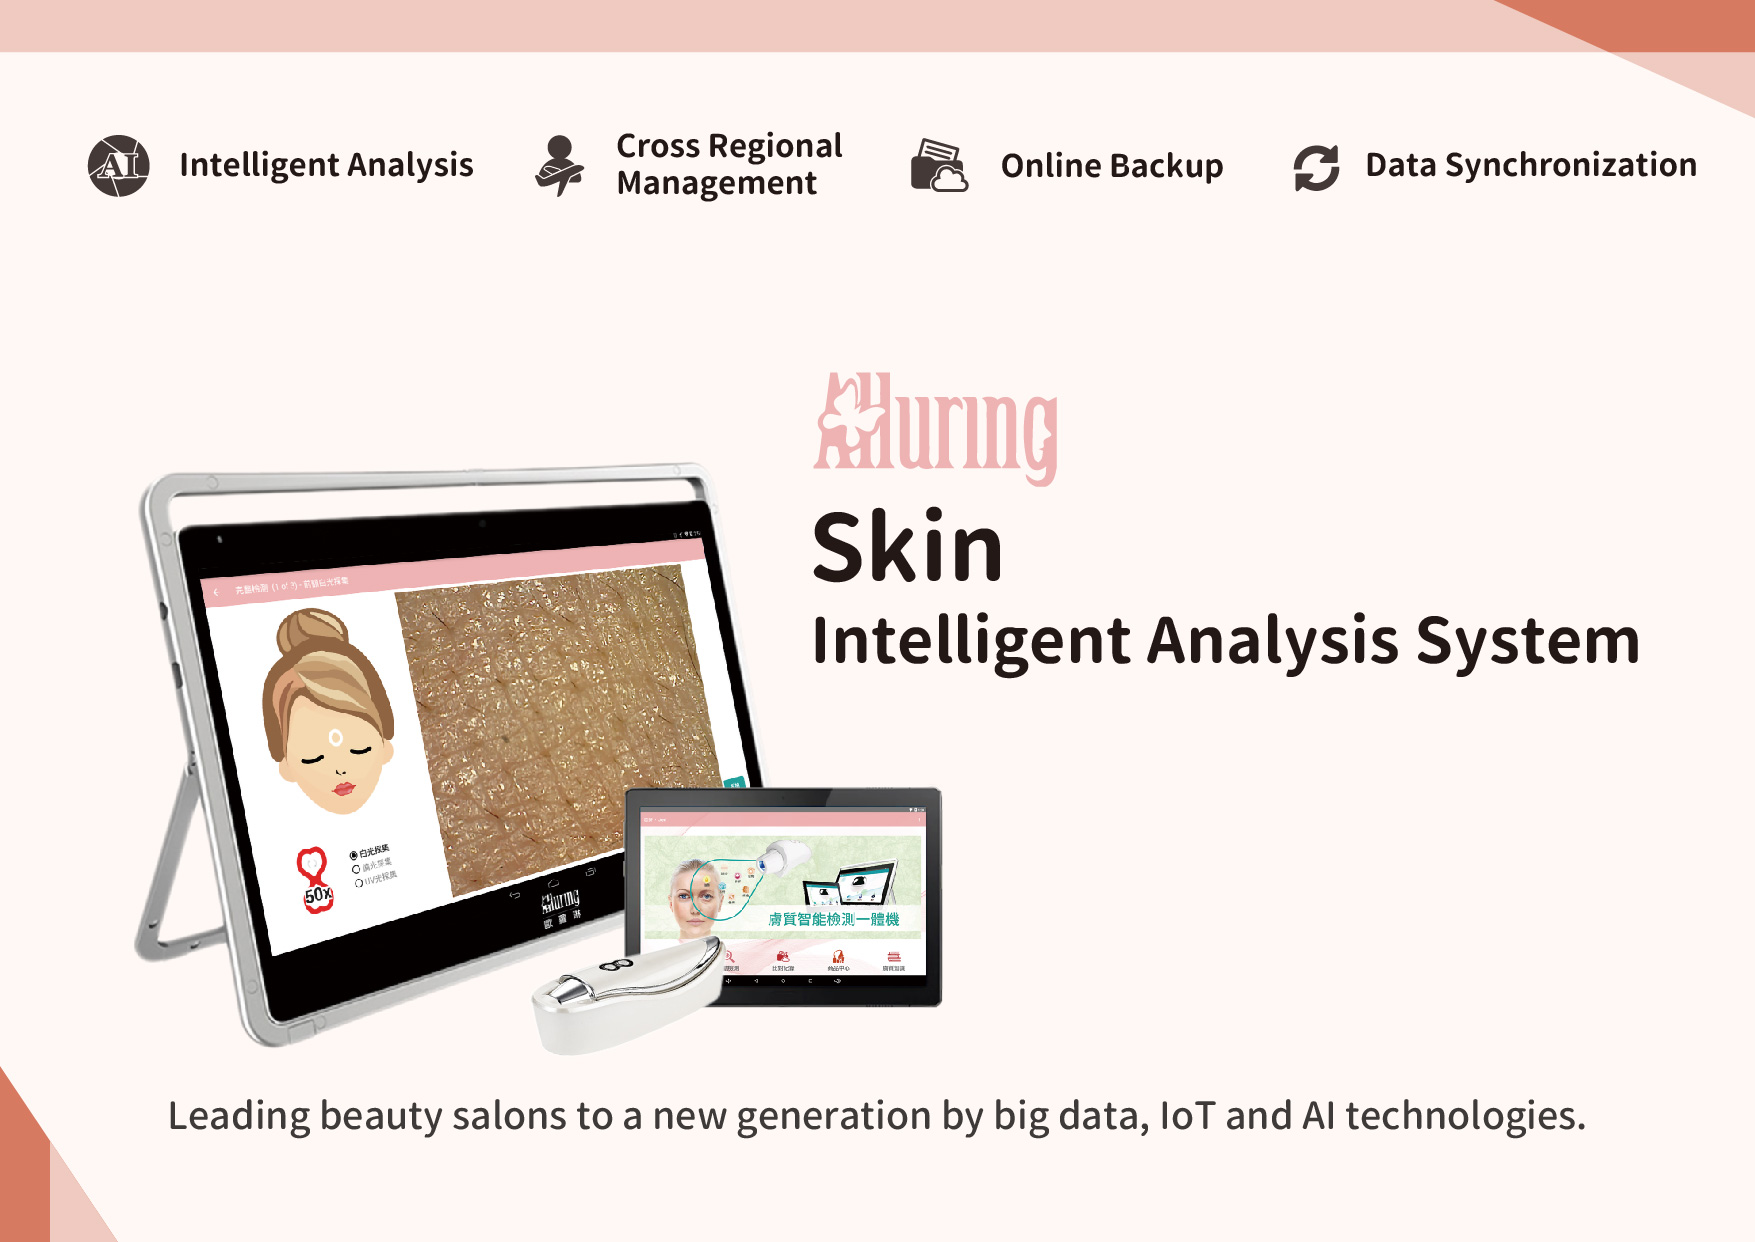 Alluring Skin Intelligent Analysis System: Intelligent Analysis, Cross Regional Management, Online Backup, Data Synchronization.